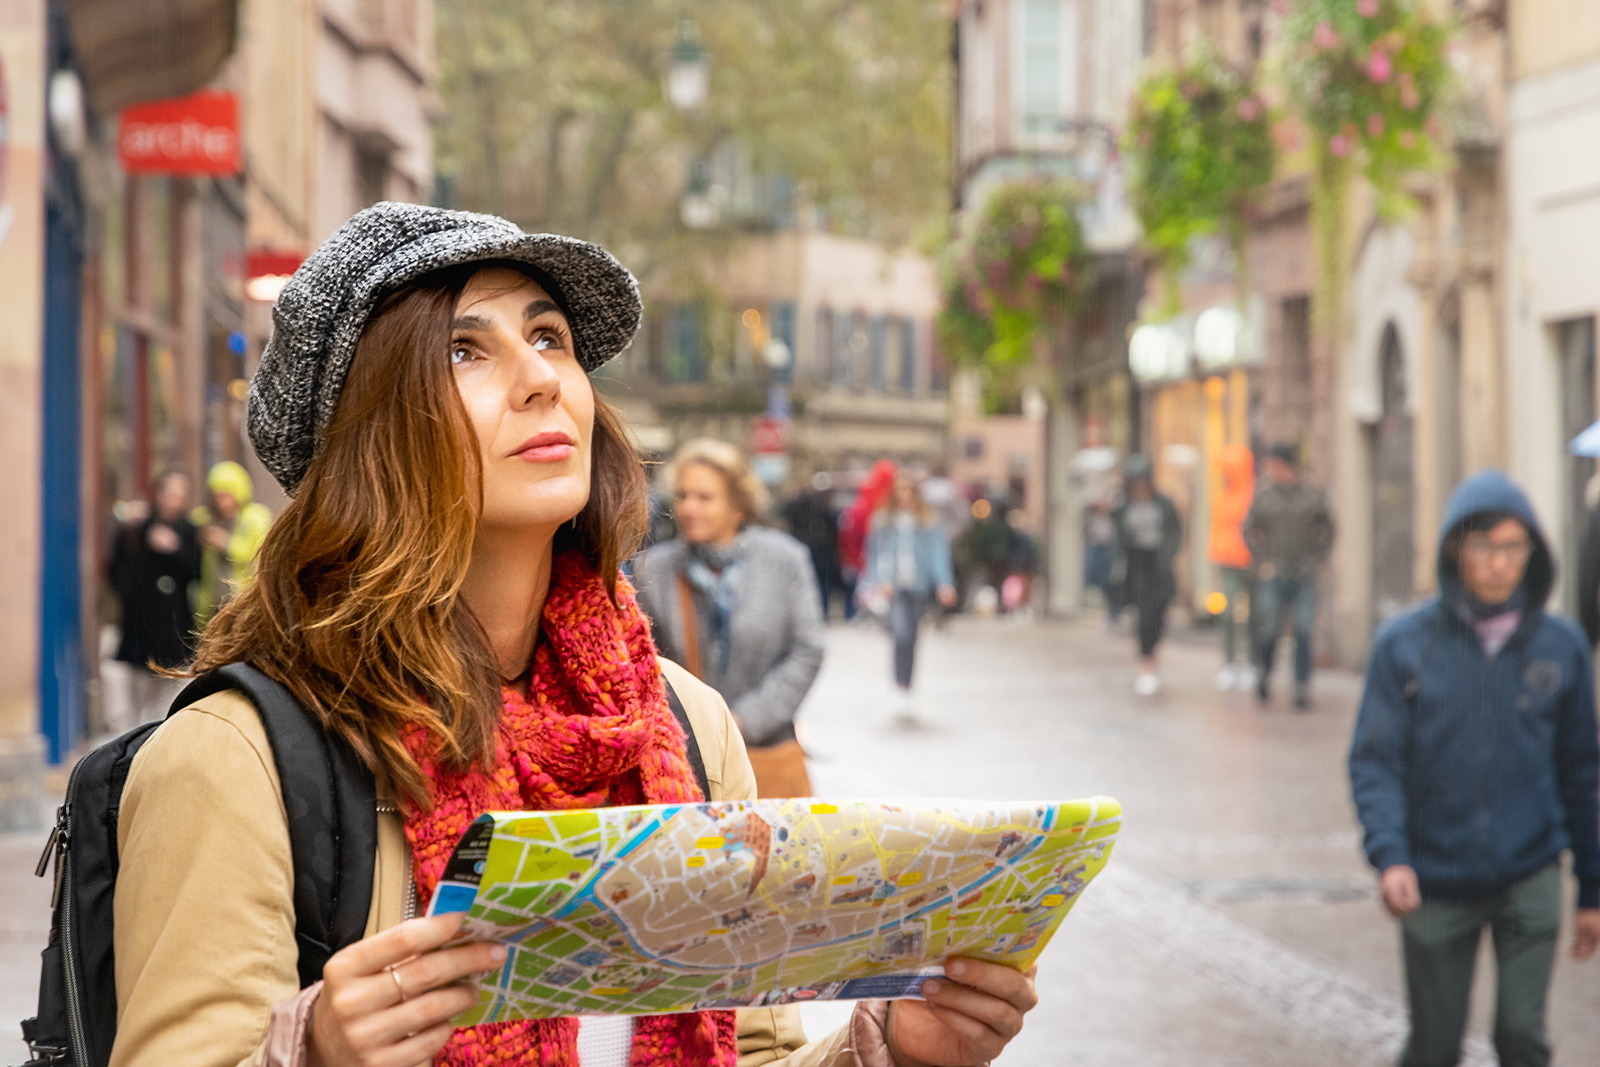 Woman traveling alone while holding a map.